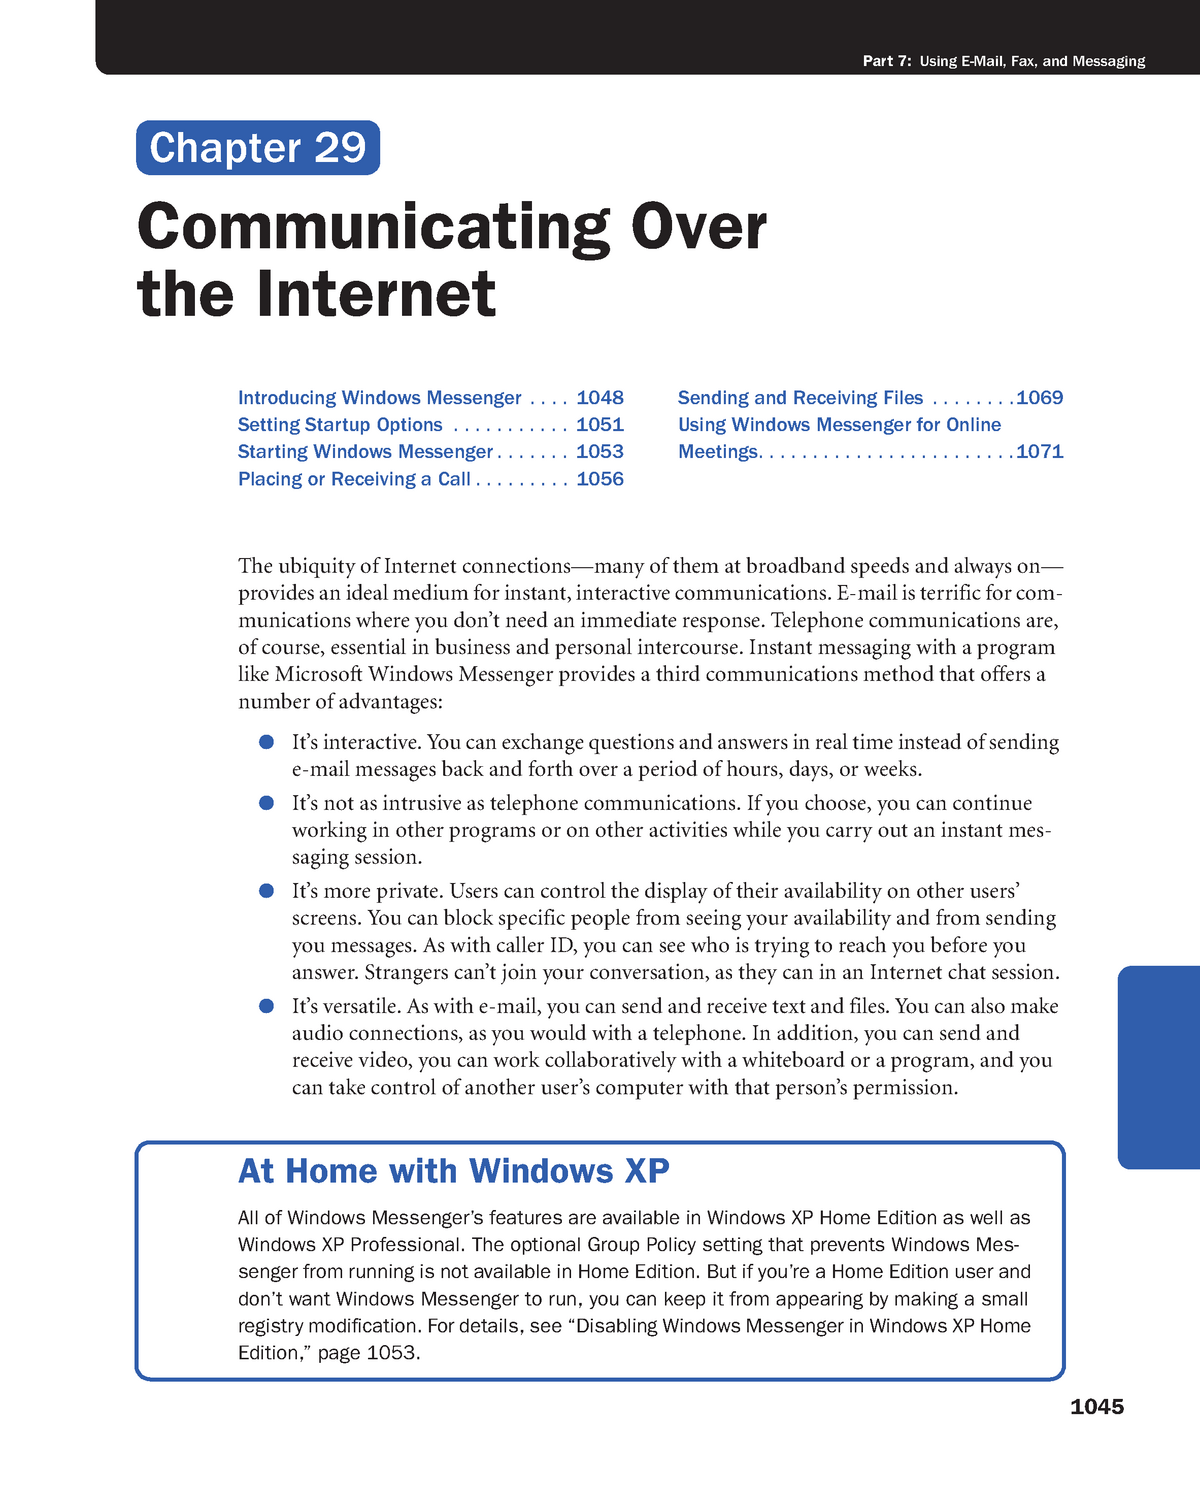 Chapter 29 - Communicating Over the Internet - Principles of